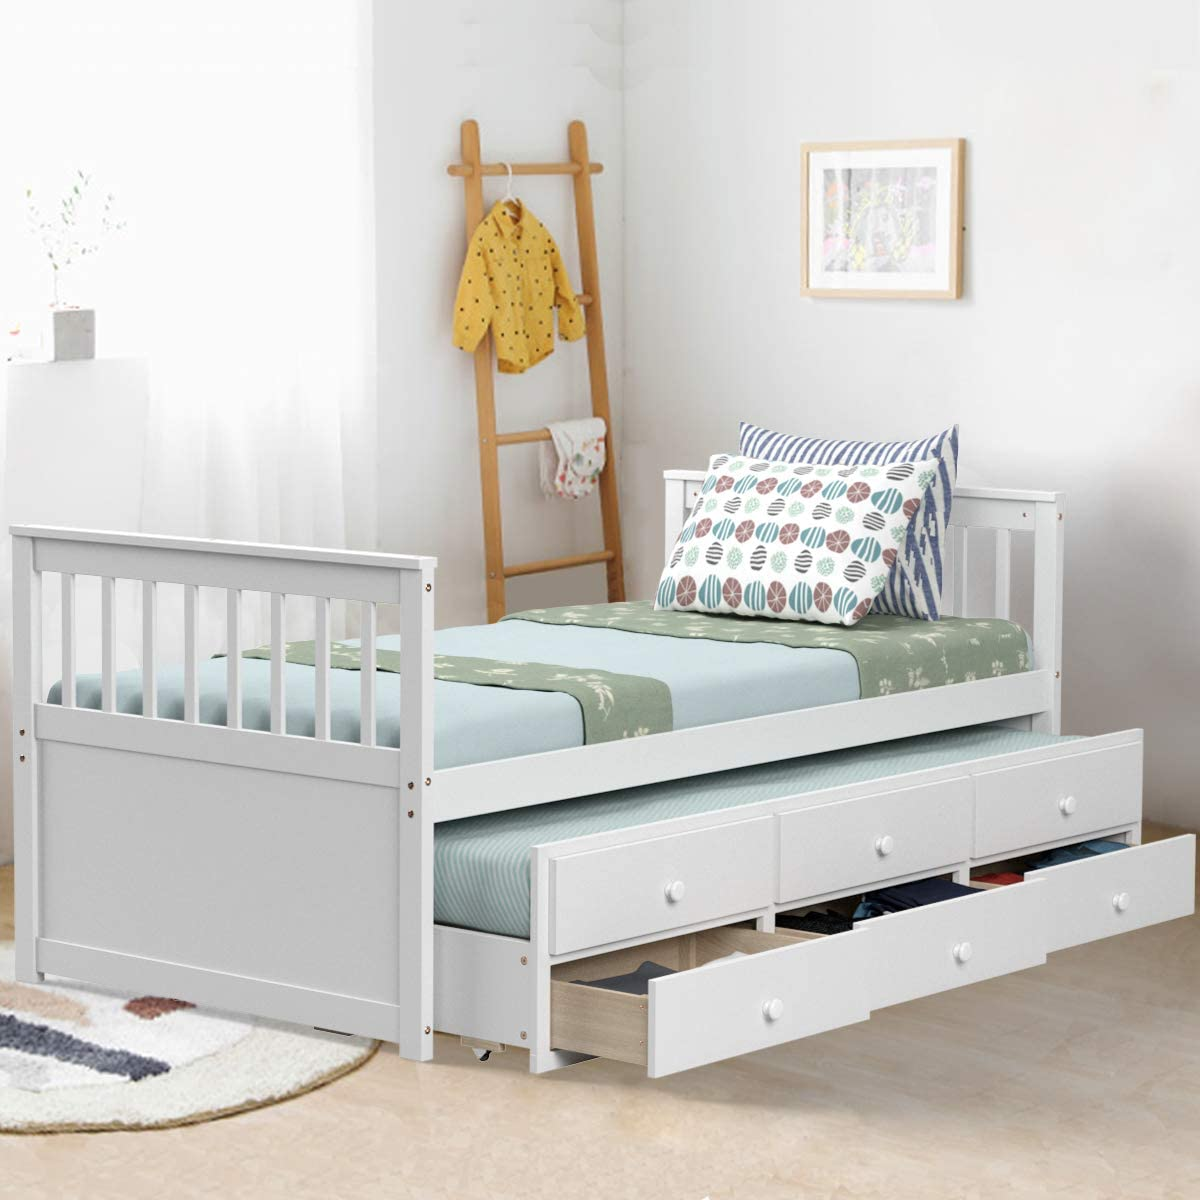 - Amazon.com: Giantex Twin Captain's Bed With Trundle Bed, Wood